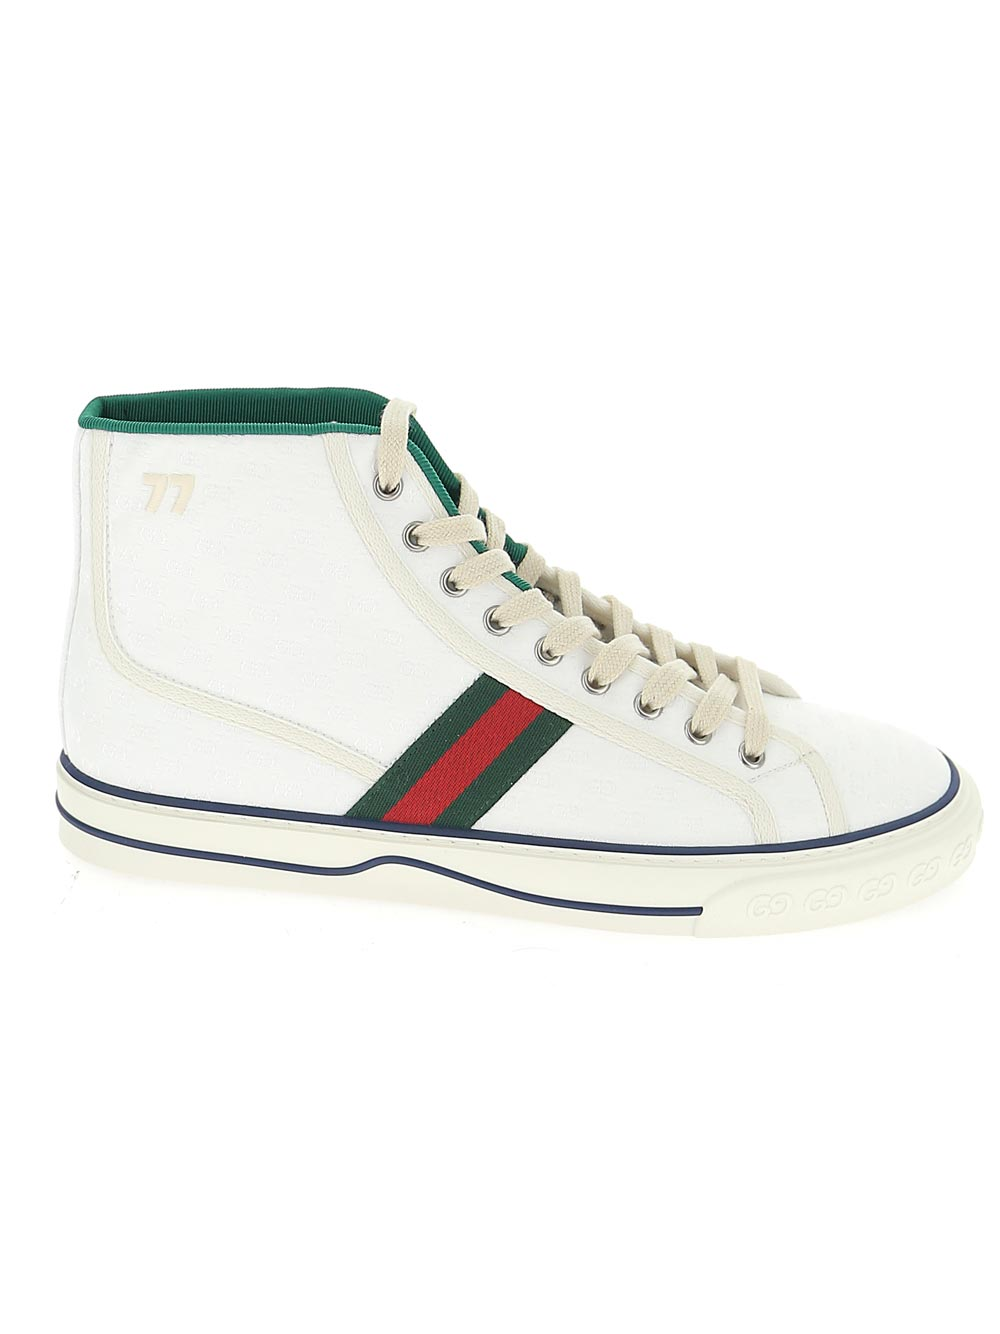 GUCCI GUCCI TENNIS 1977 HIGH TOP SNEAKERS